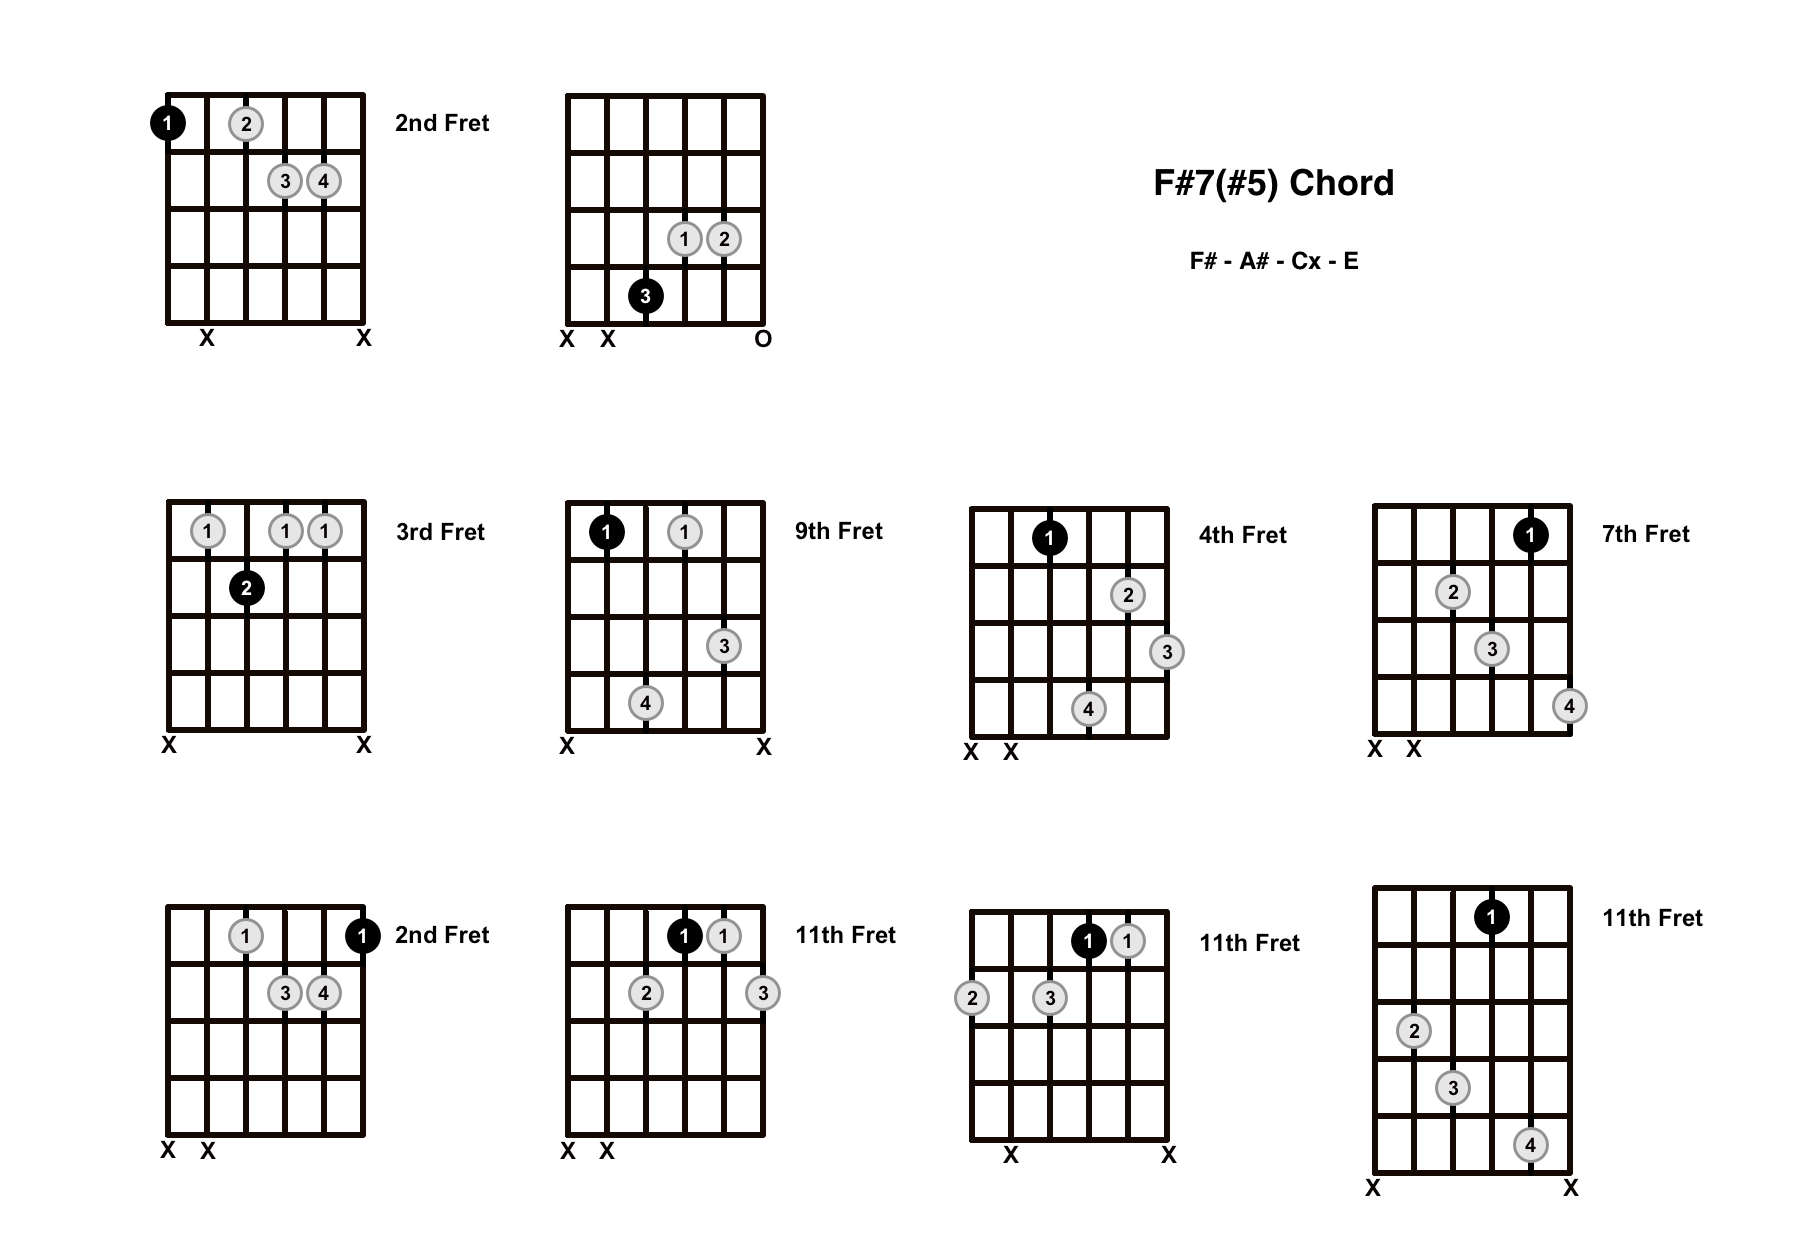 F Sharp Augmented 7 Chord On The Guitar (F#7#5, F#+7) – Diagrams, Finger Positions and Theory